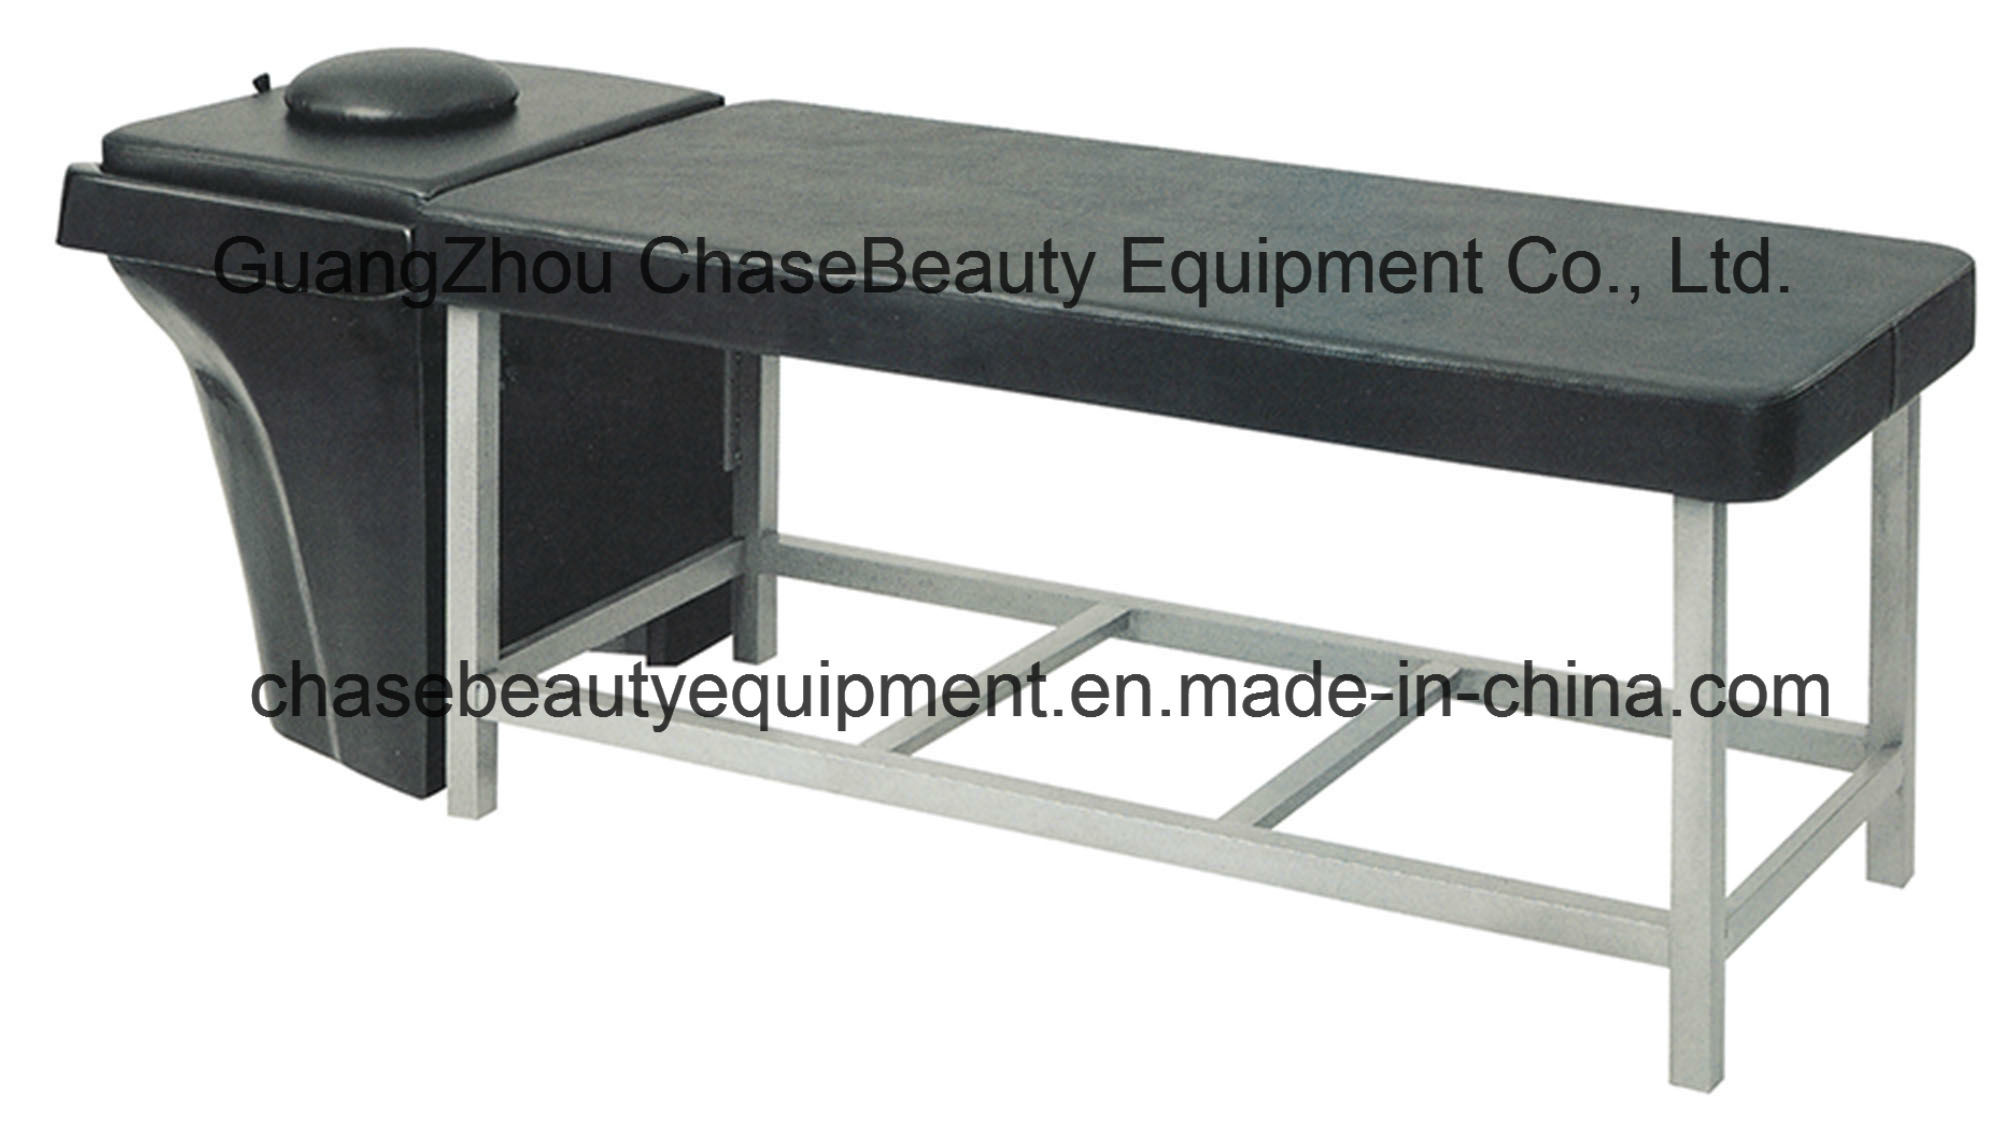 Thailand Style Shampoo Chair &Bed for Beauty Salon Equipment